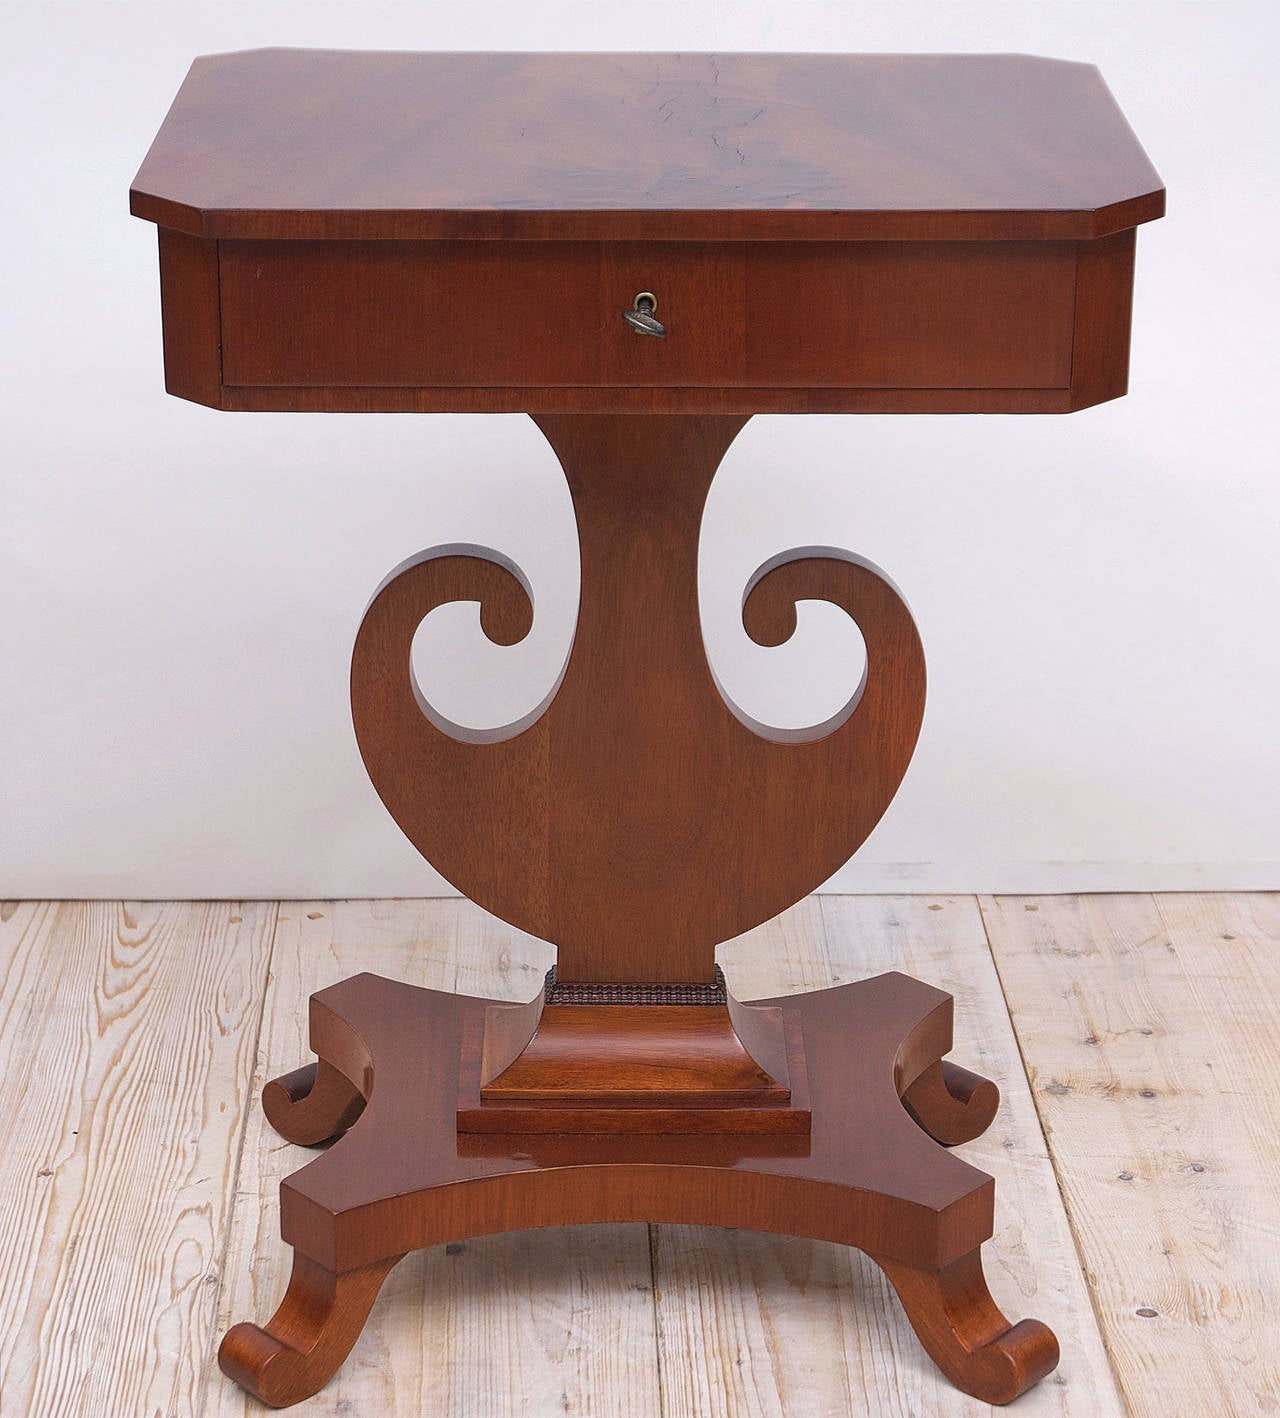 Antique Karl Johan Side Table with Lyre Base in Mahogany, Sweden, circa 1845 3